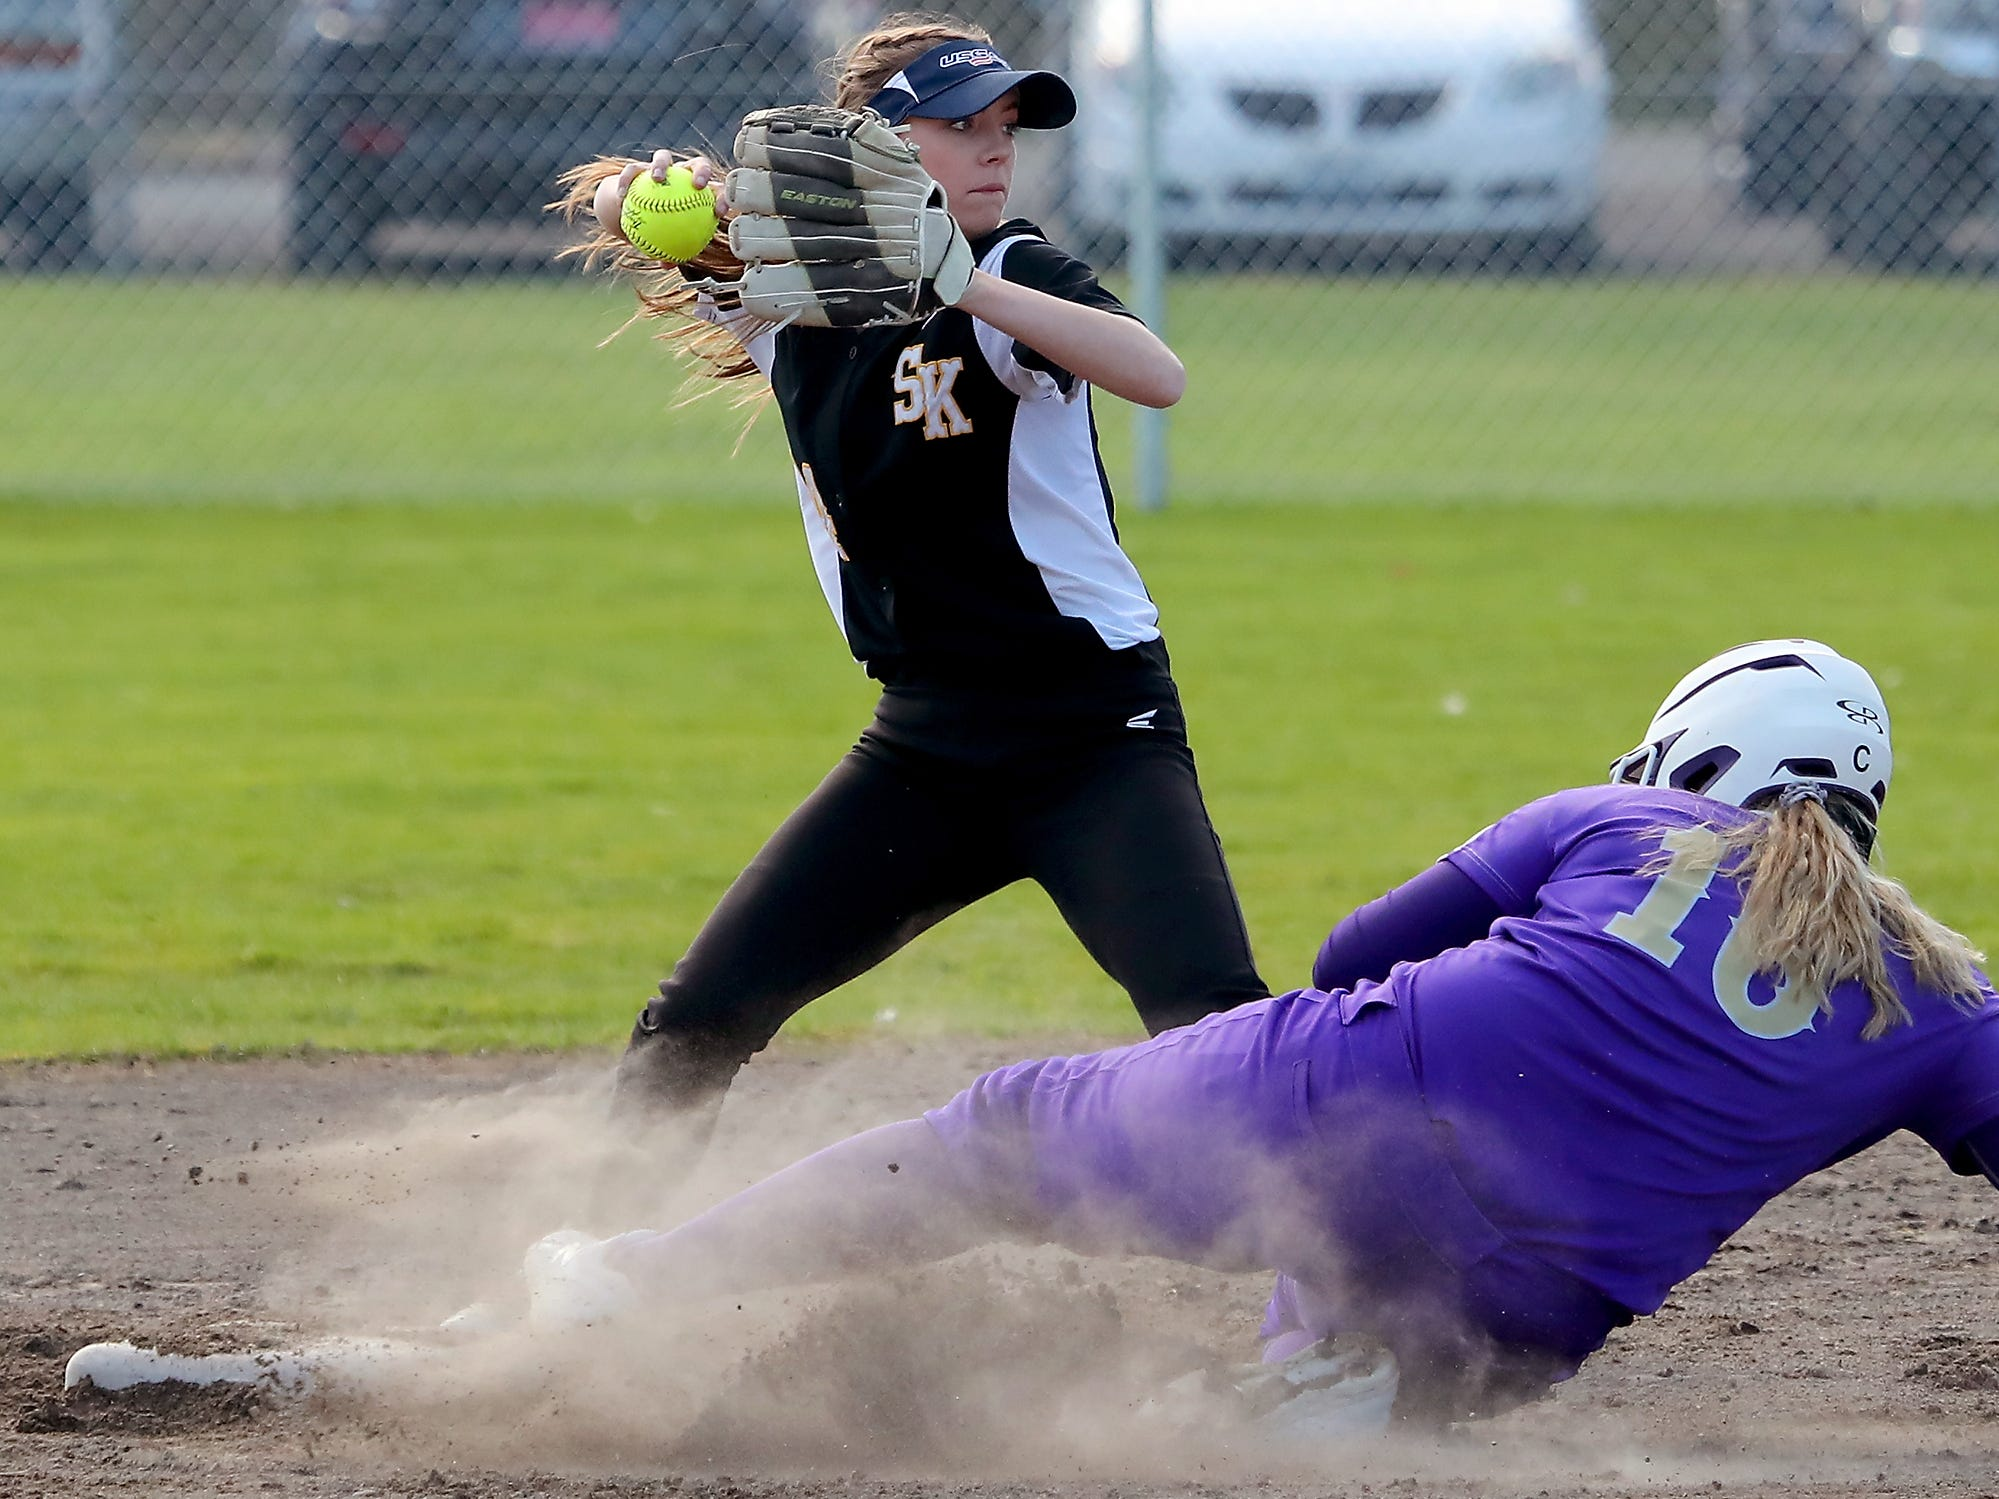 South Kitsap's Teanna Lathum turns to throw the ball to first for a double play as Puyallup's Sidney Booth is out wiht a slide into second during their game on Tuesday, March 26, 2019.